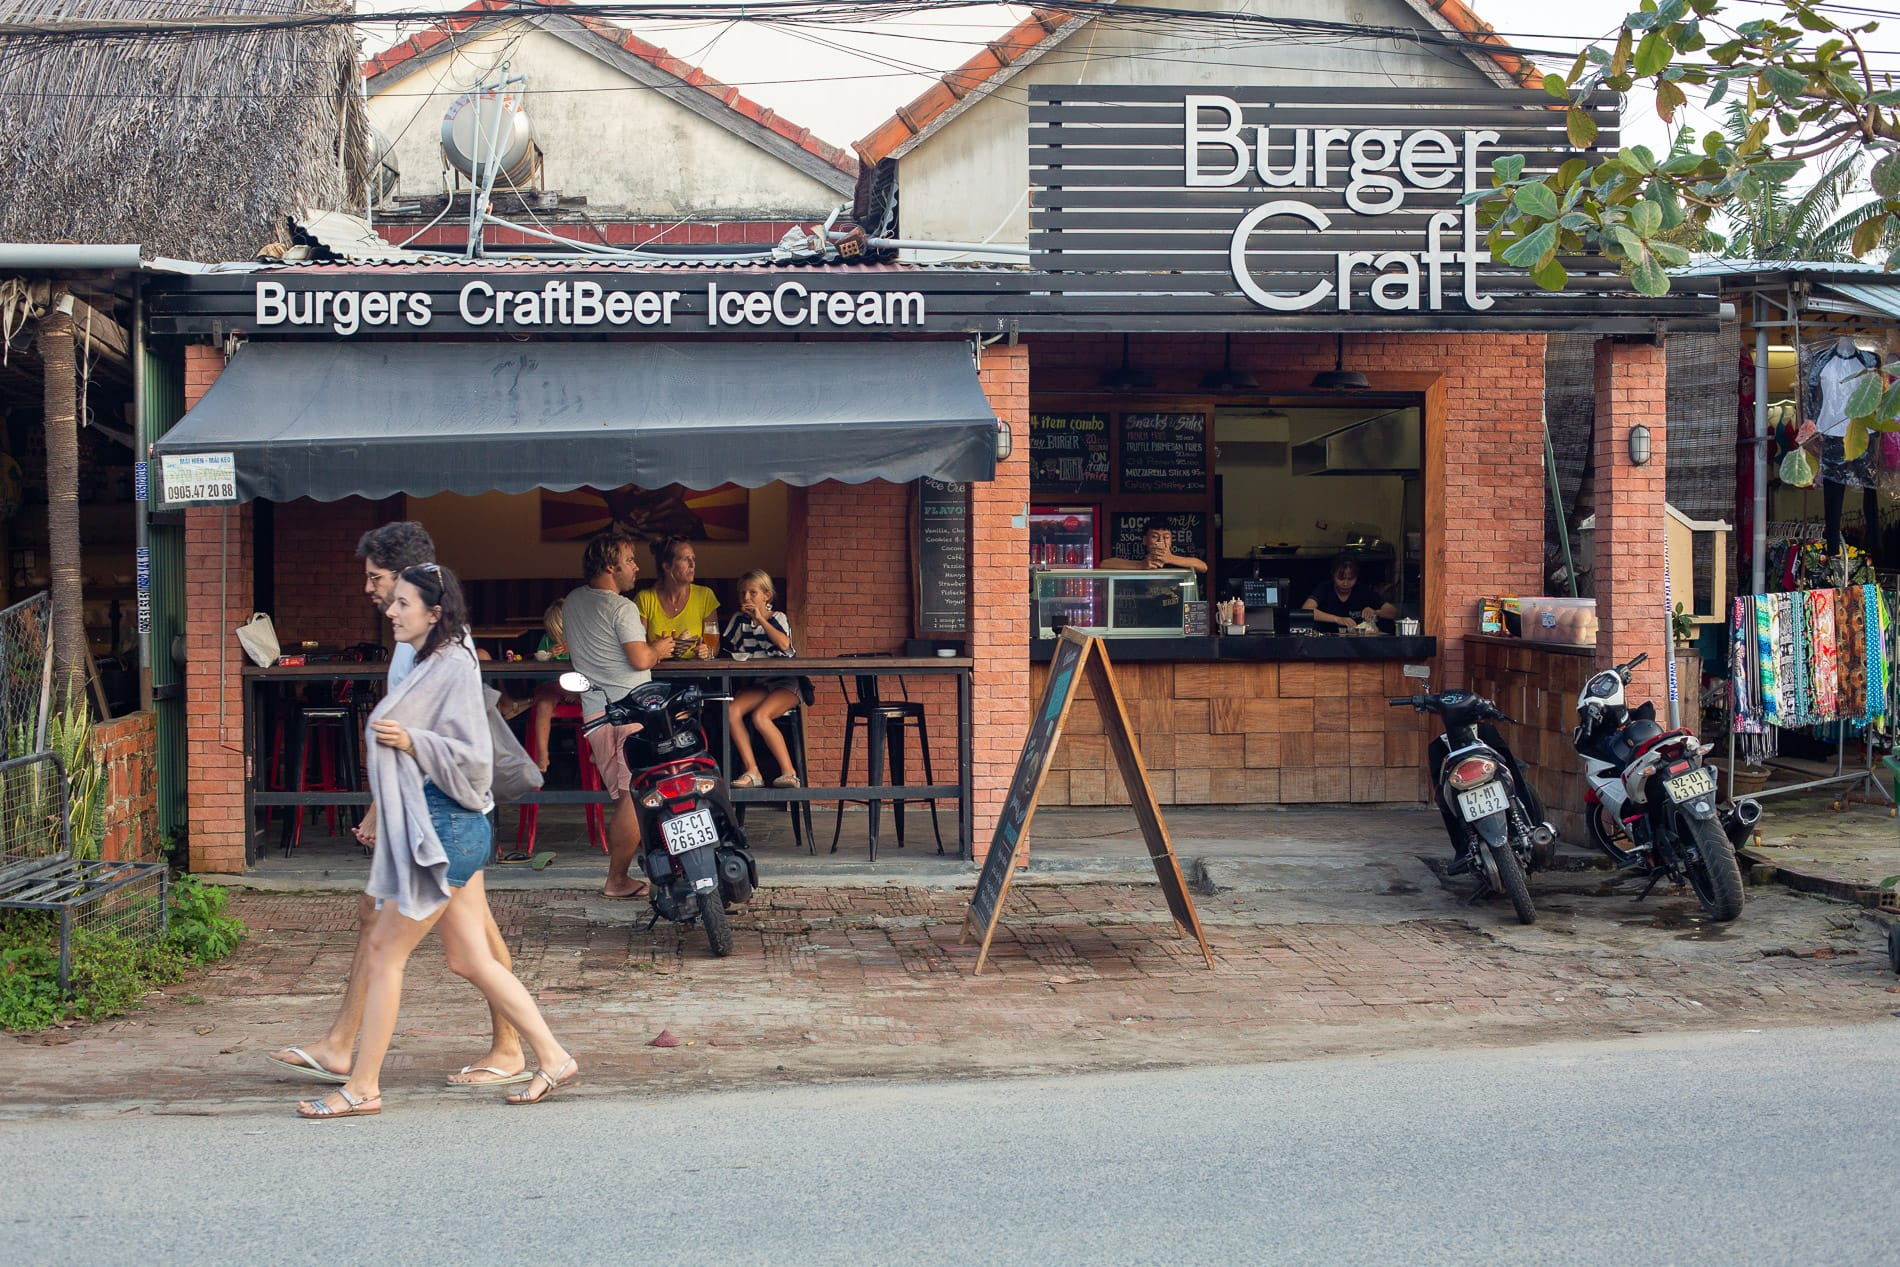 The best burger can be found at Burger Craft